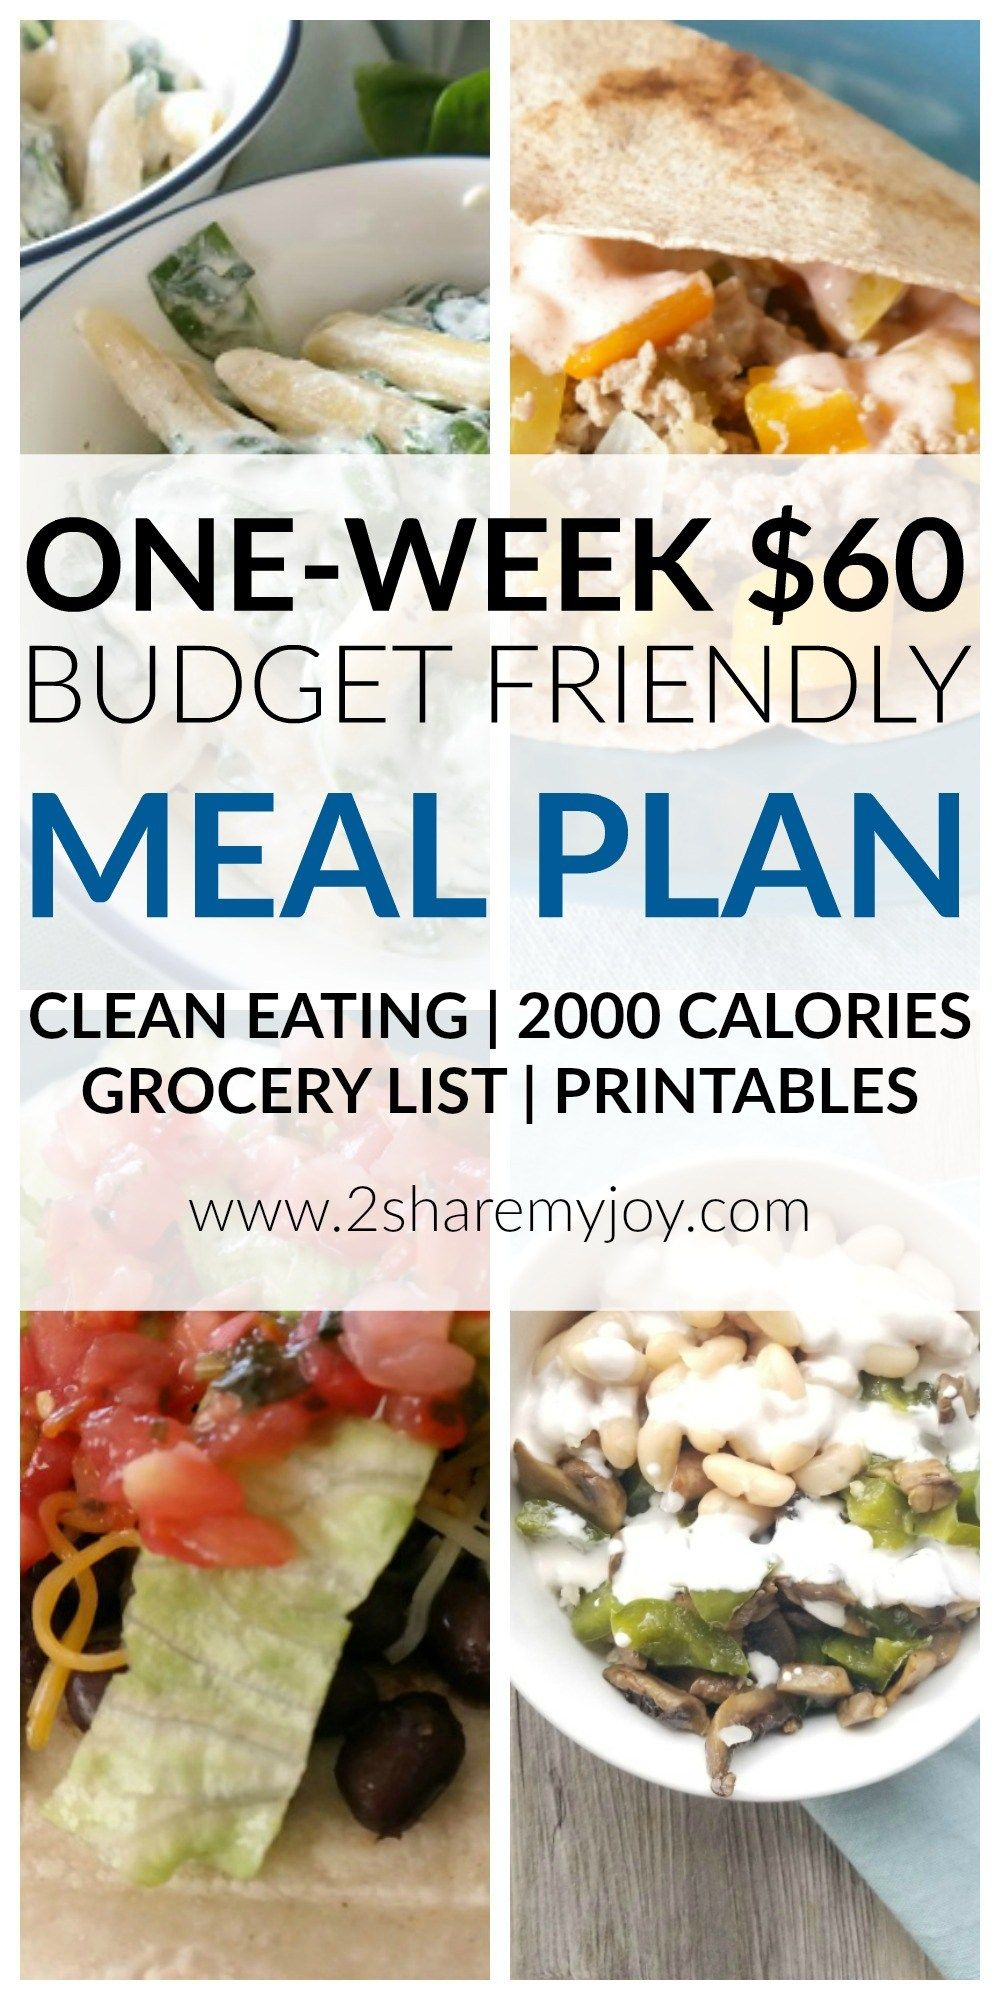 8Day Plant Based Meal Plan on A Budget Healthy recipes